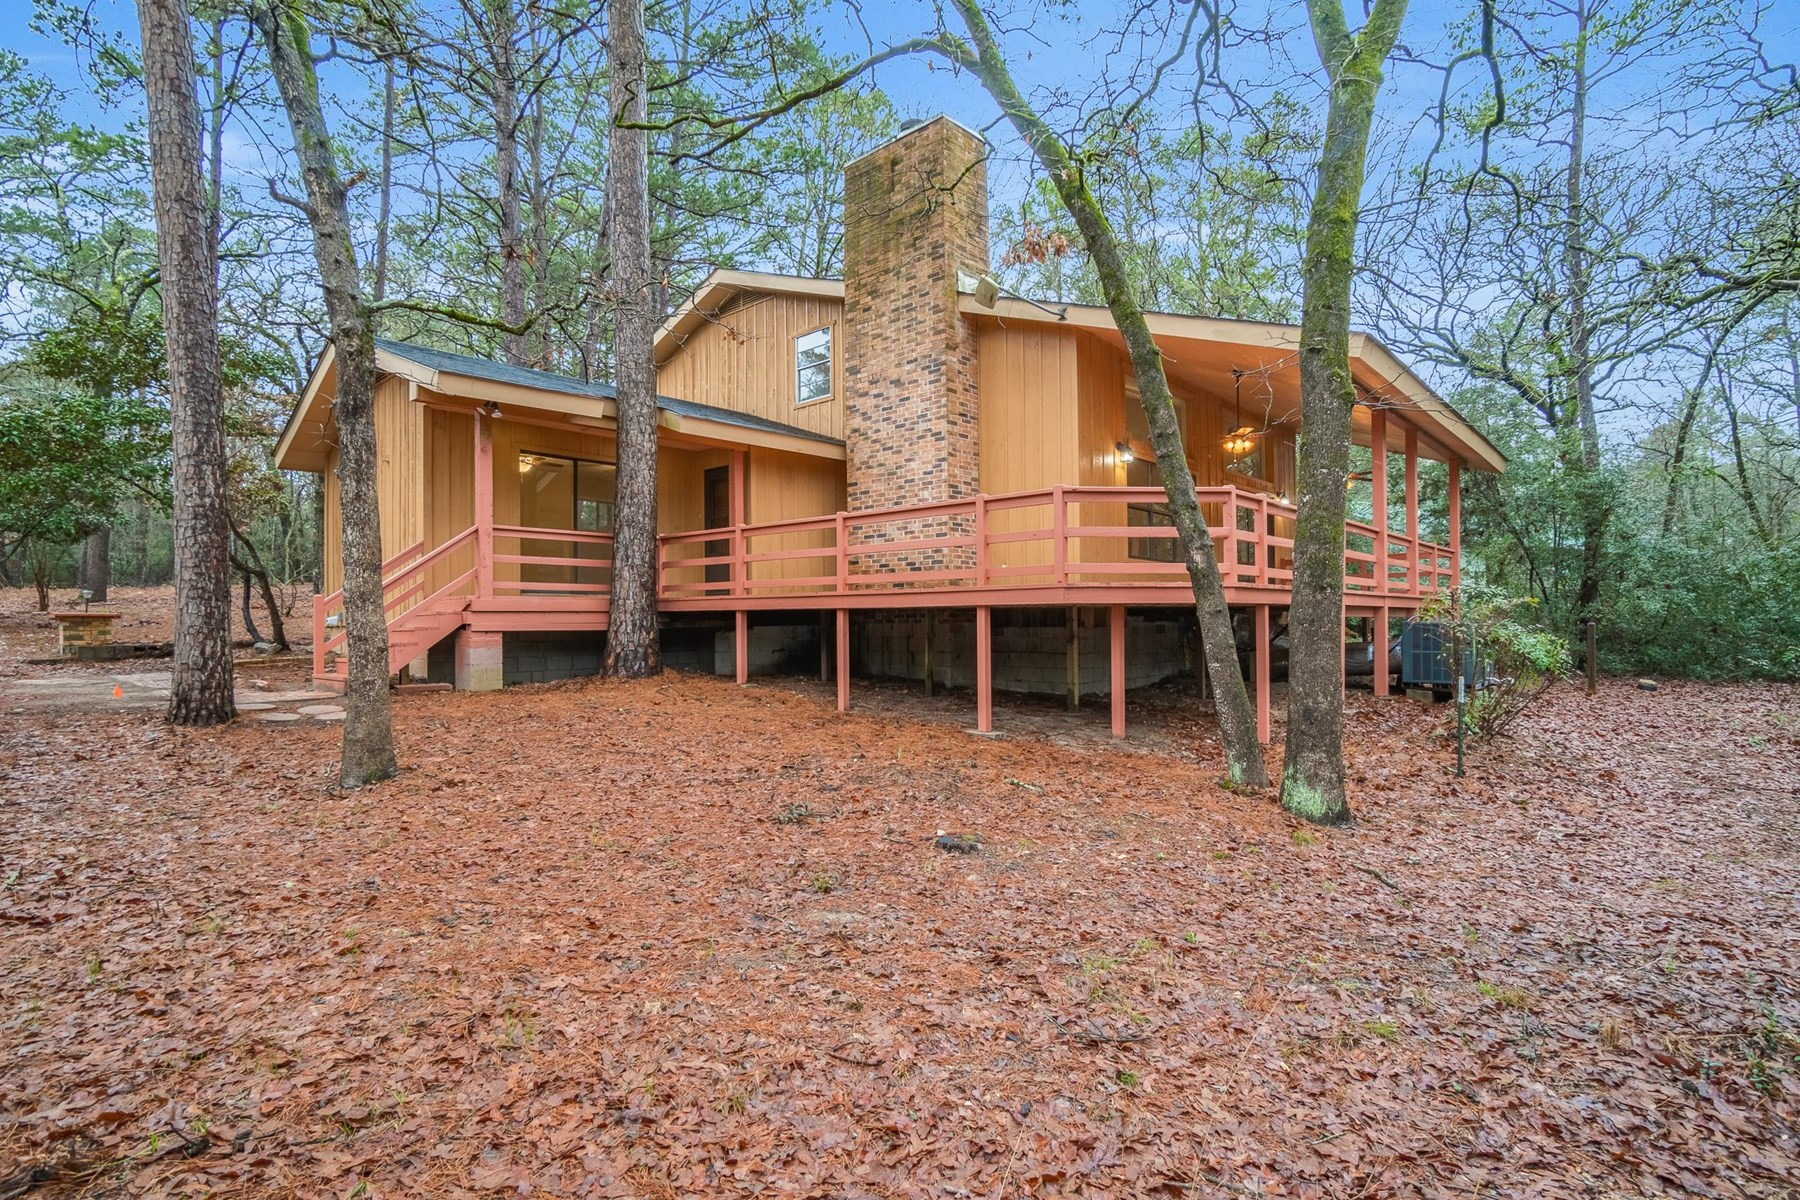 HOLLY LAKE RANCH TEXAS WOOD COUNTY GATED HOME RESORT